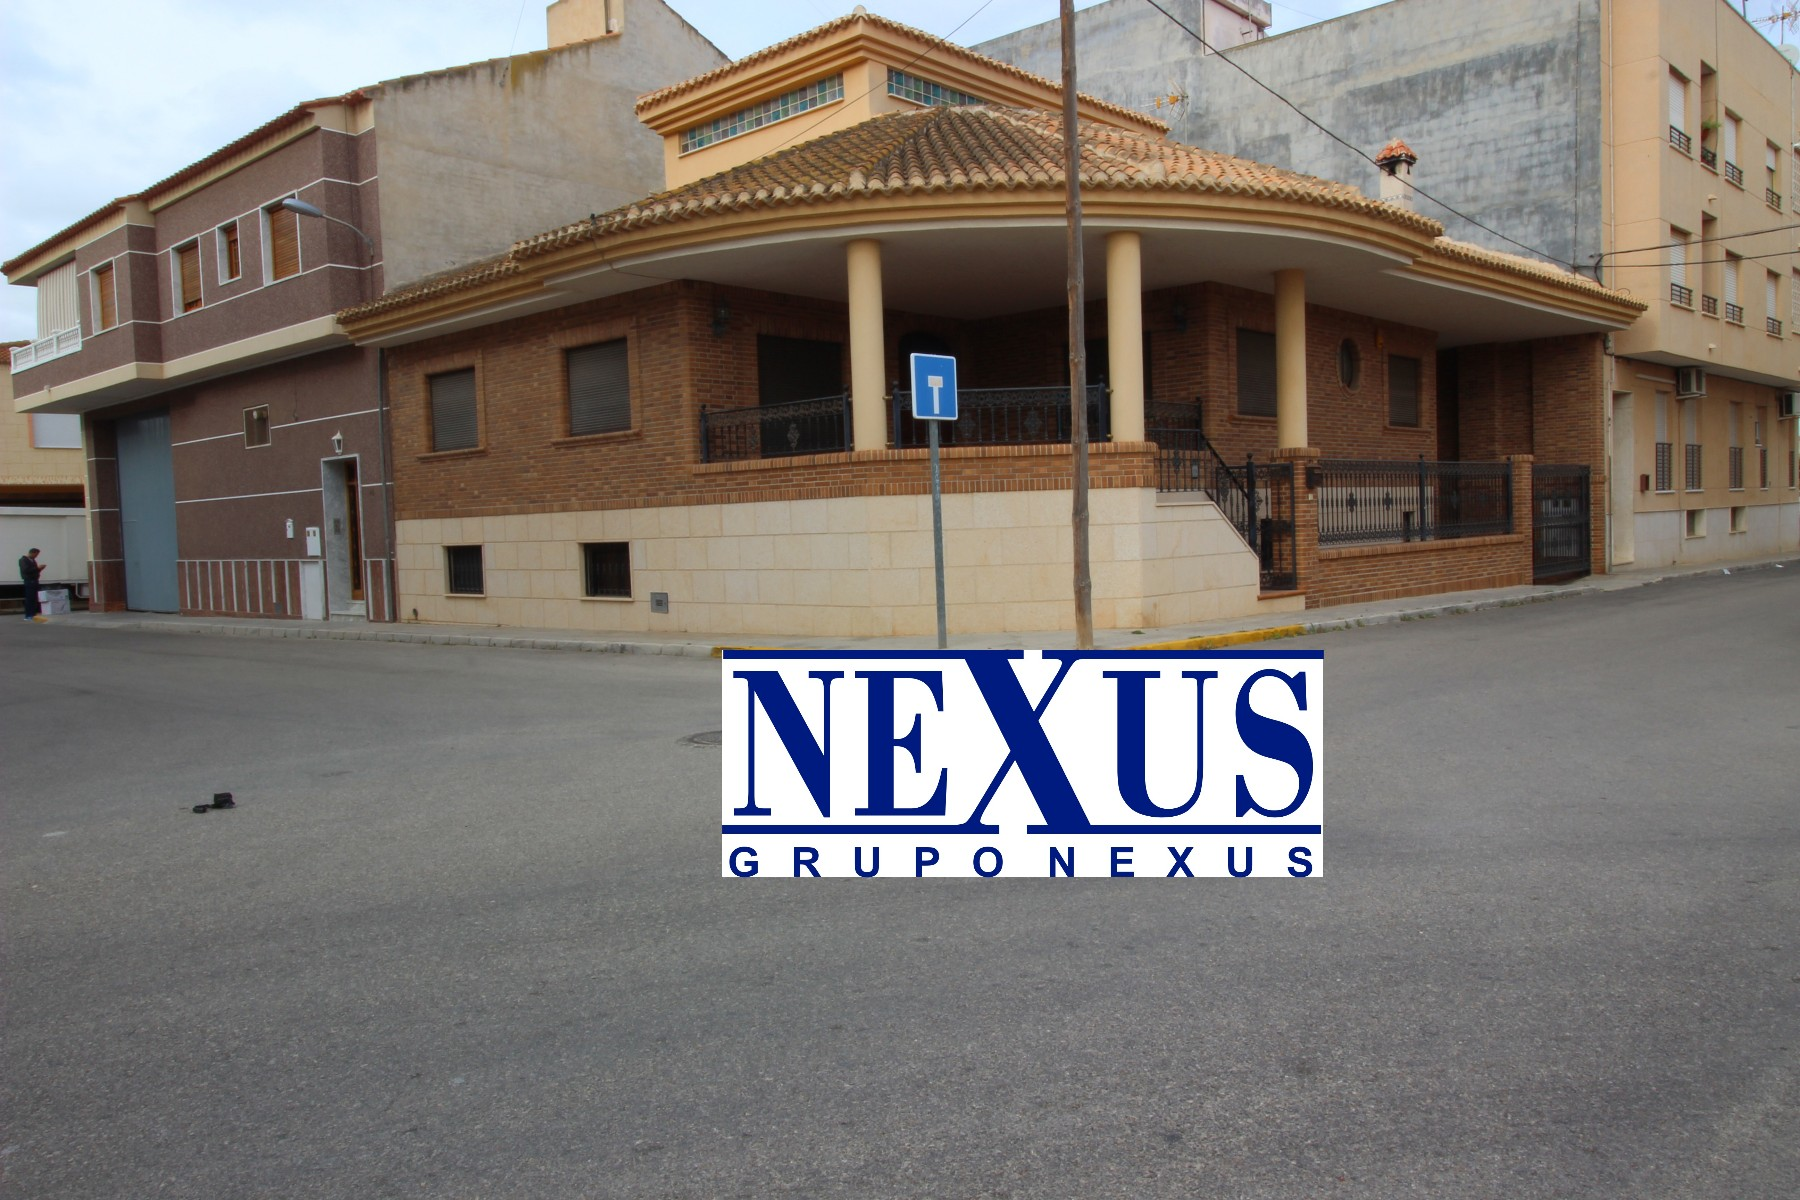 INMOBILIARIA GRUPO NEXUS SELLS EXCELLENT VILLA in Nexus Grupo